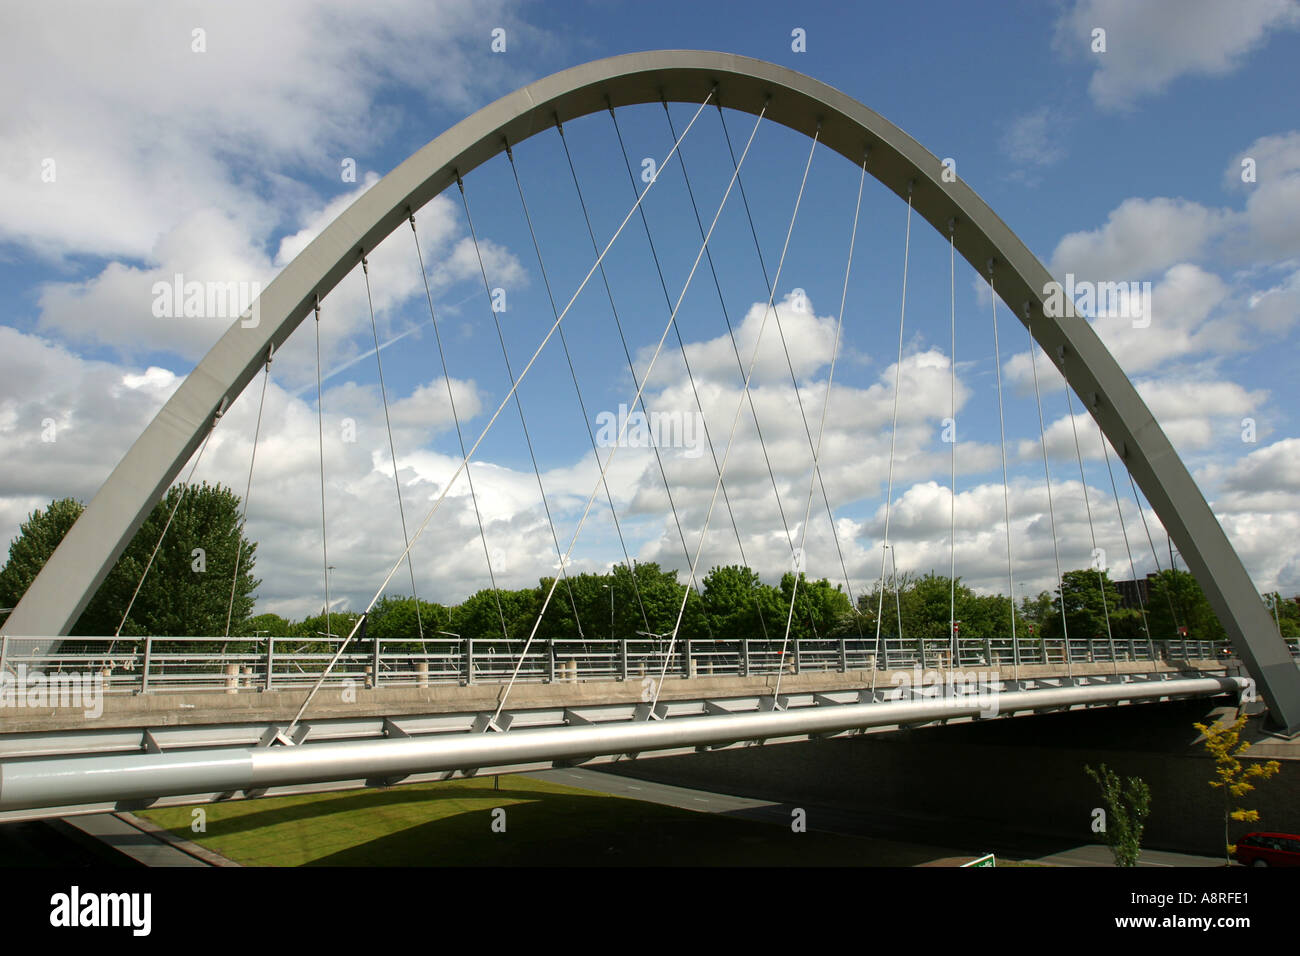 parabolic arch There isn't all the detailed triangulation, but the basic parabolic structure is a very good look a like also notice in the build that there are less horizontal blocks at the beginning of each arch, and then progressively longer rows of horizontal blocks towards the top.